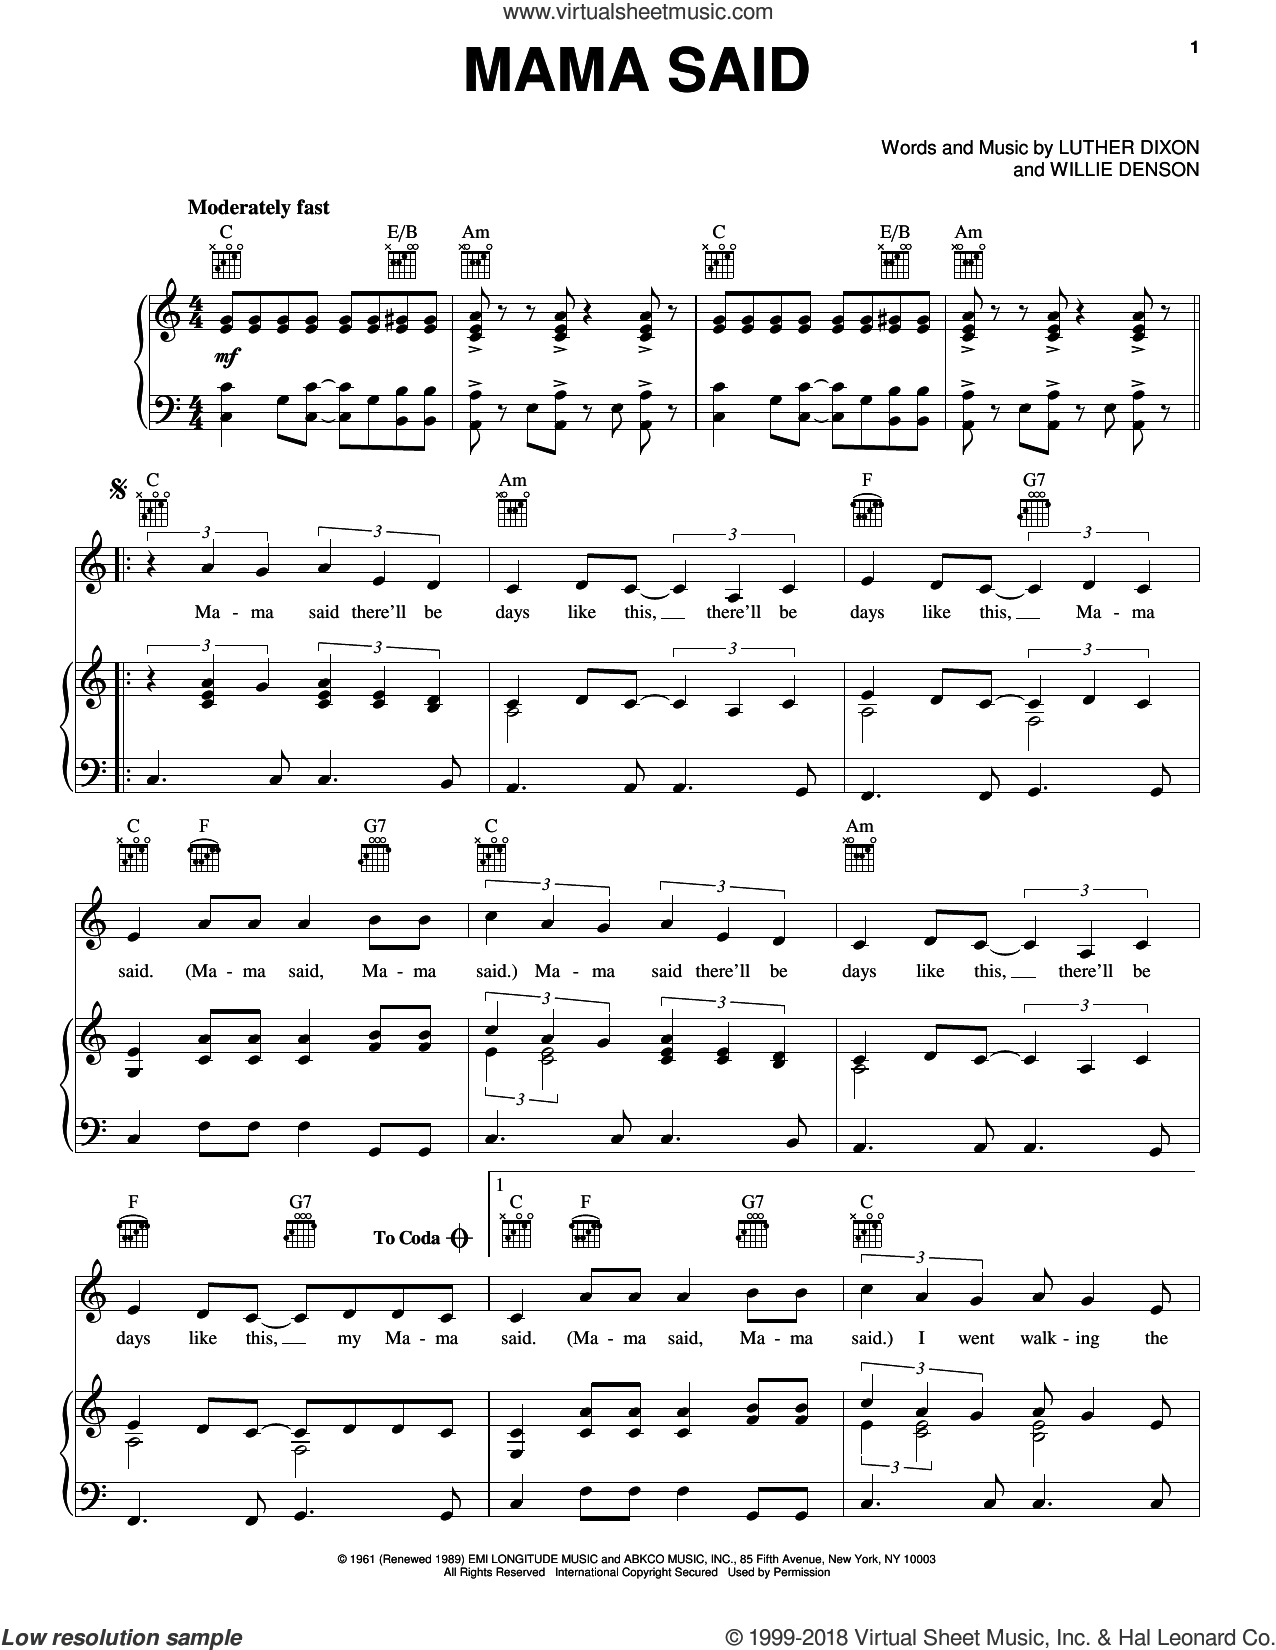 Mama Said sheet music for voice, piano or guitar by The Shirelles, Luther Dixon and Willie Denson, intermediate skill level